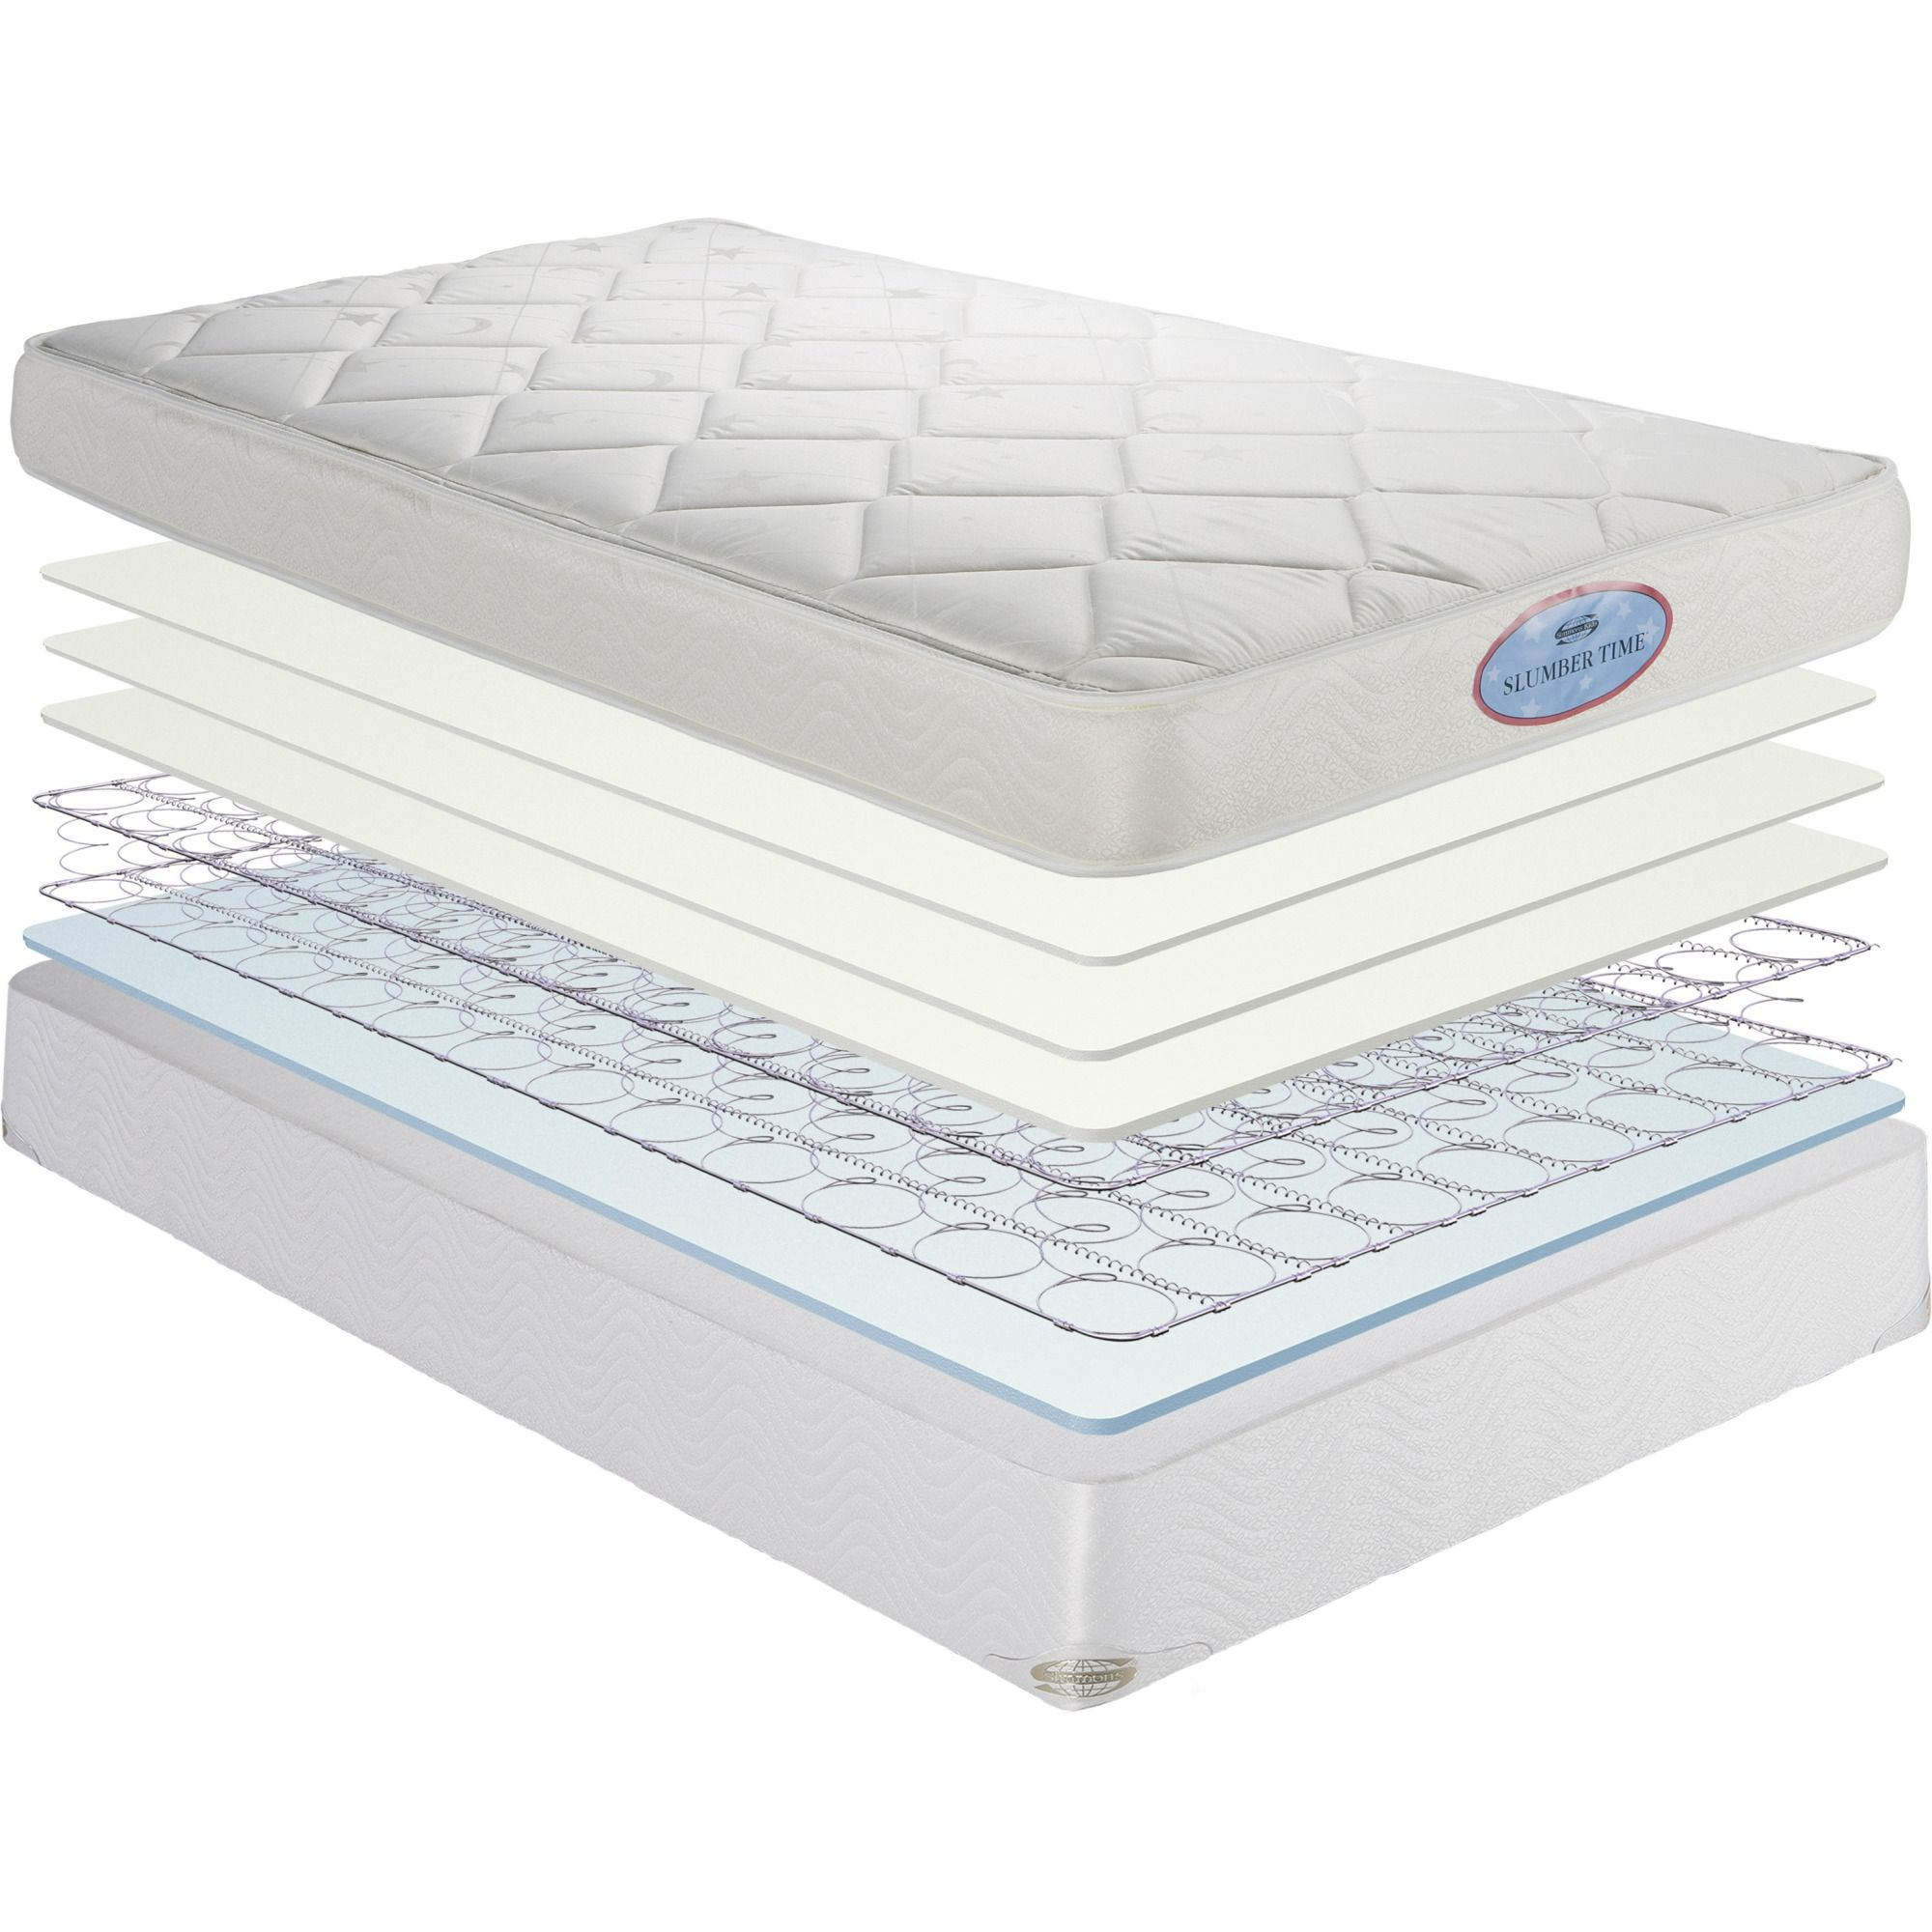 Comfortable Toddler Spring Mattresses Simmons For Kids Slumbertime